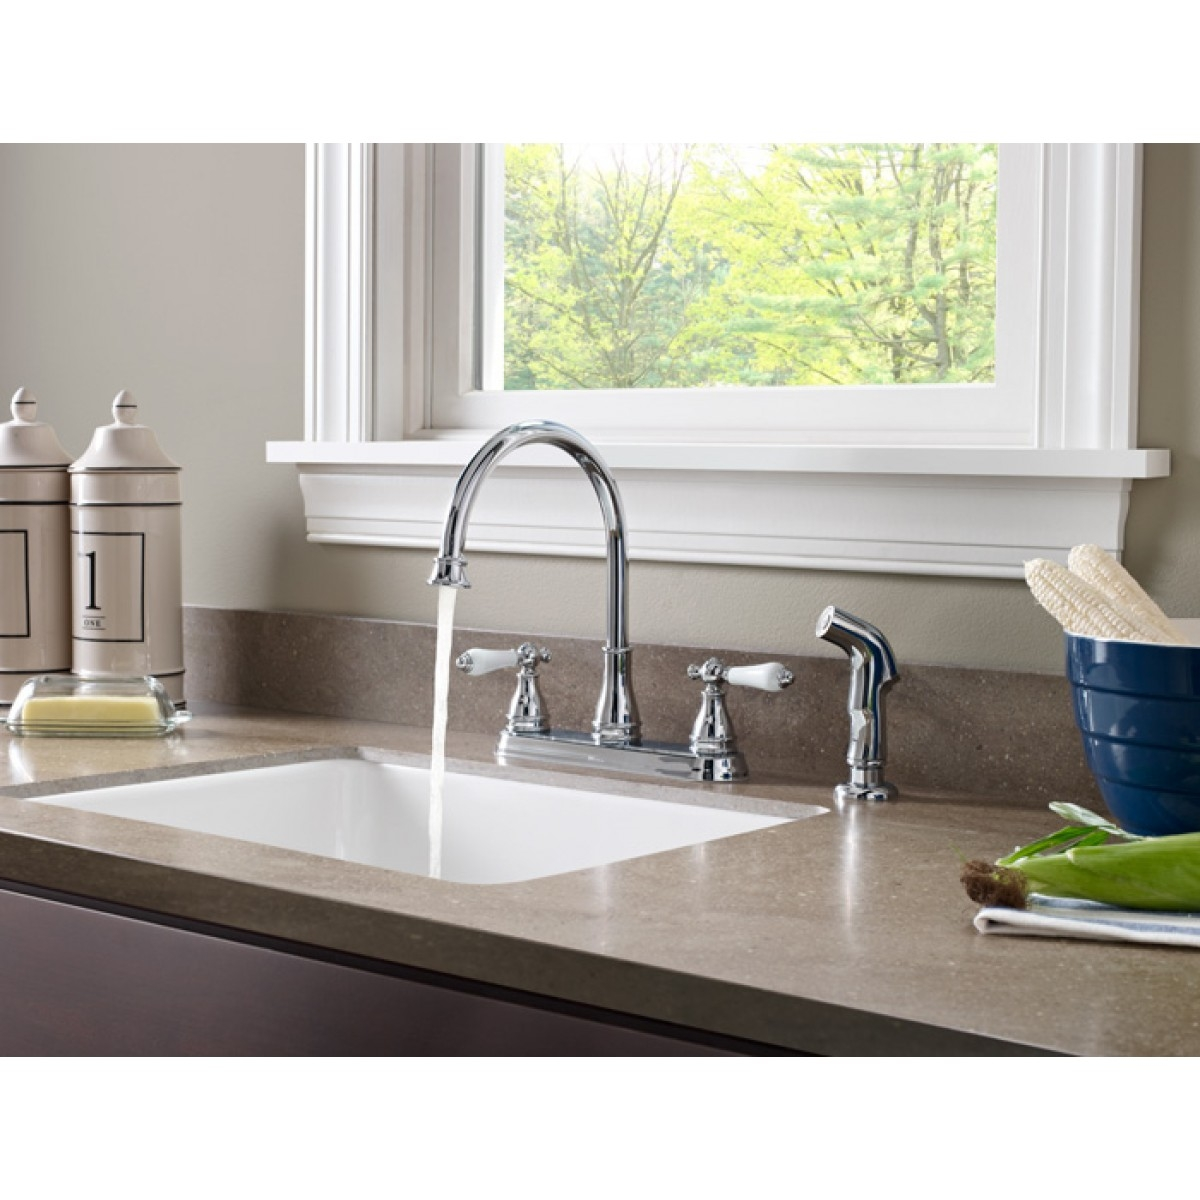 Ideas, pfister sonterra two handle widespread lead free kitchen faucet within size 1200 x 1200  .